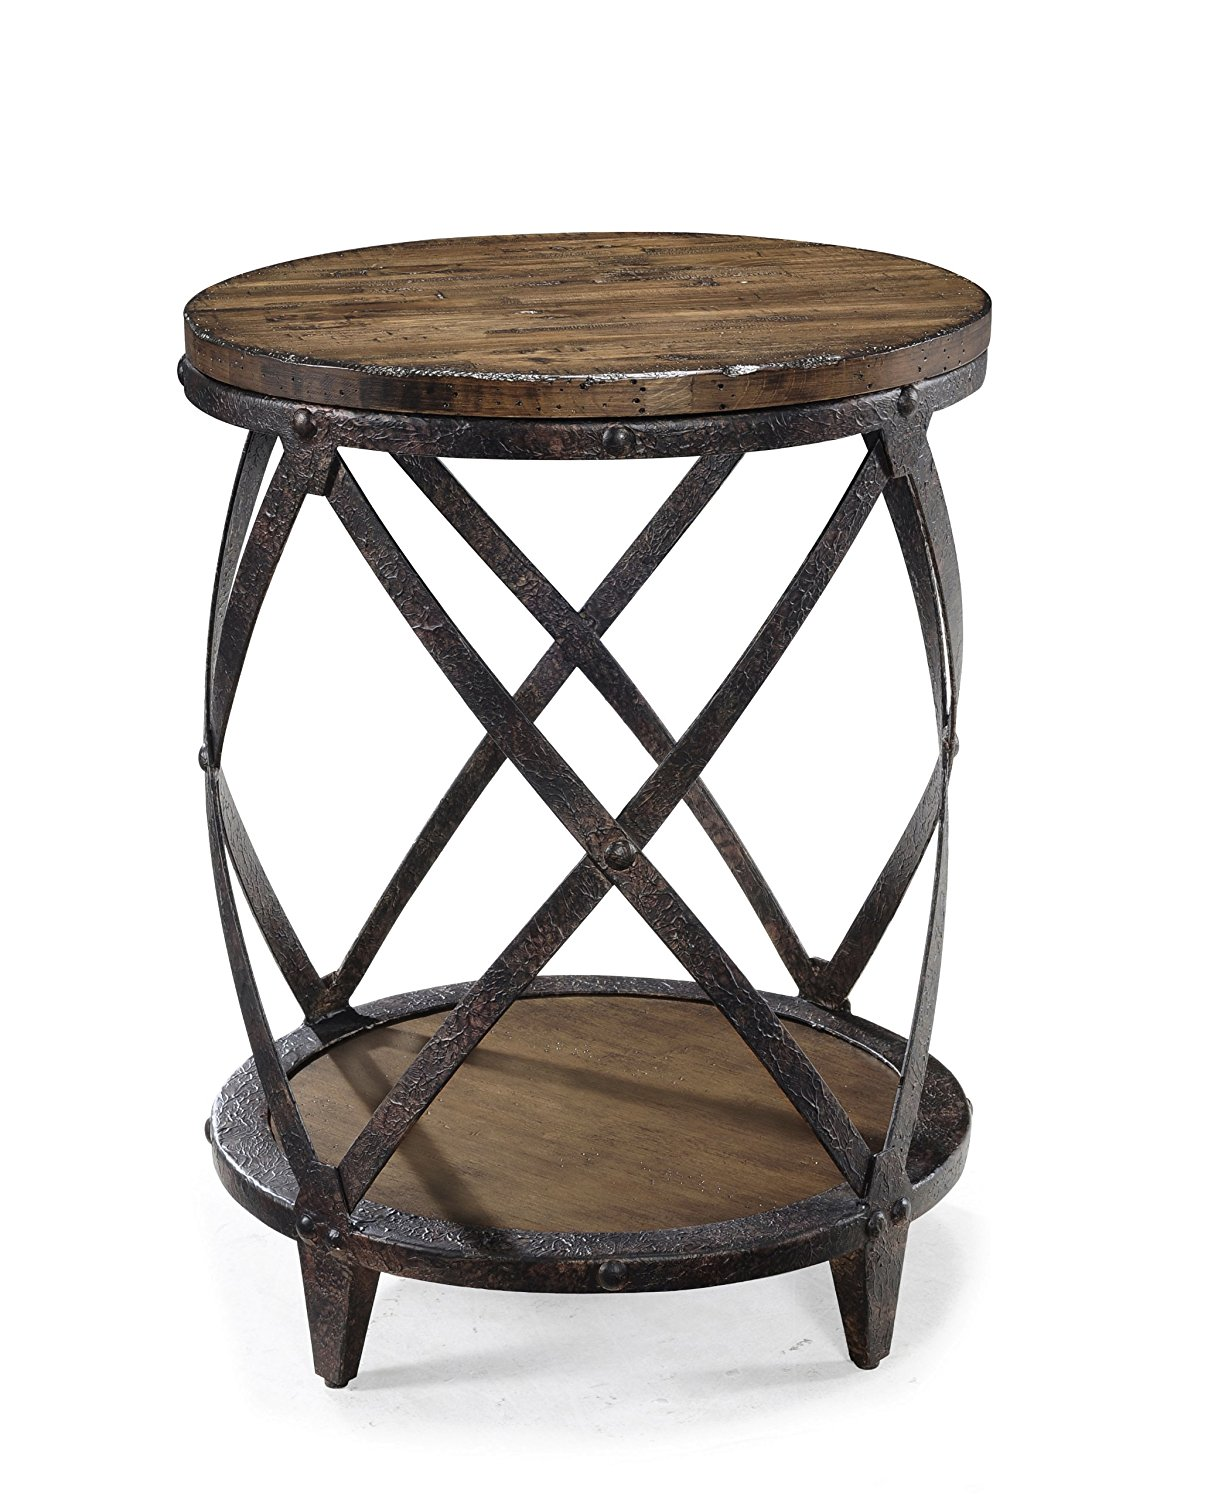 corranade bronze accent tables wrought legs target drum glass patio outdoor metal table and black white round small threshold base iron top hexagon full size decorative cover baby